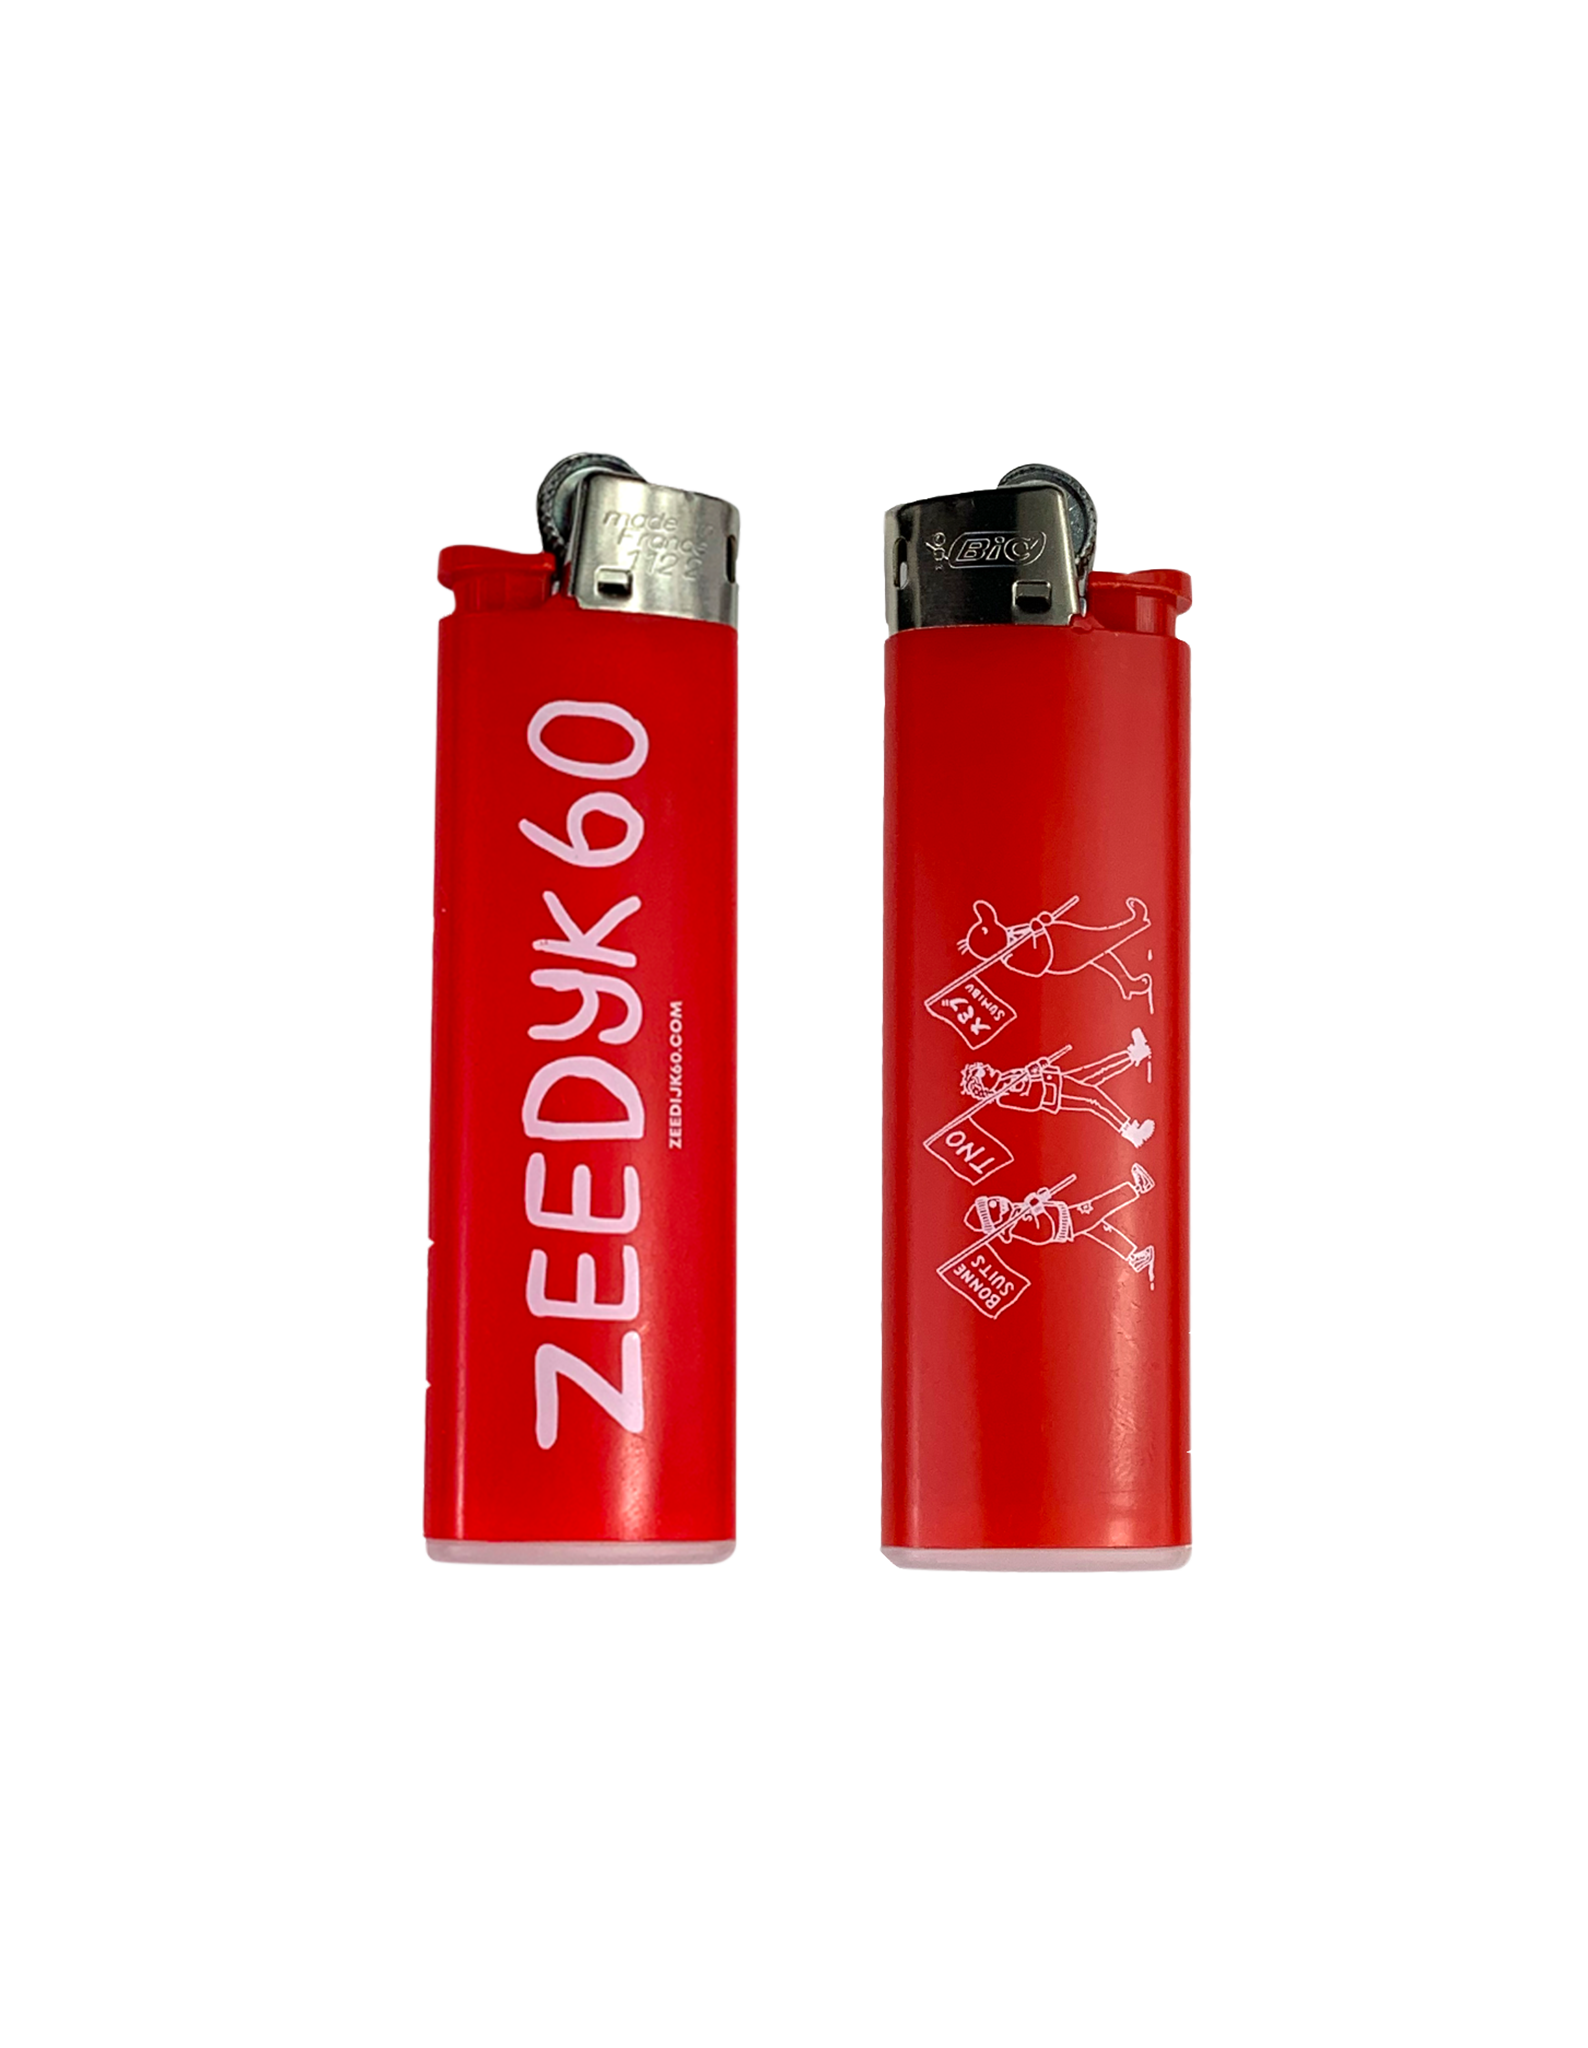 ZEEDIJK 60 Red Zeedijk 60 Logo's Lighter